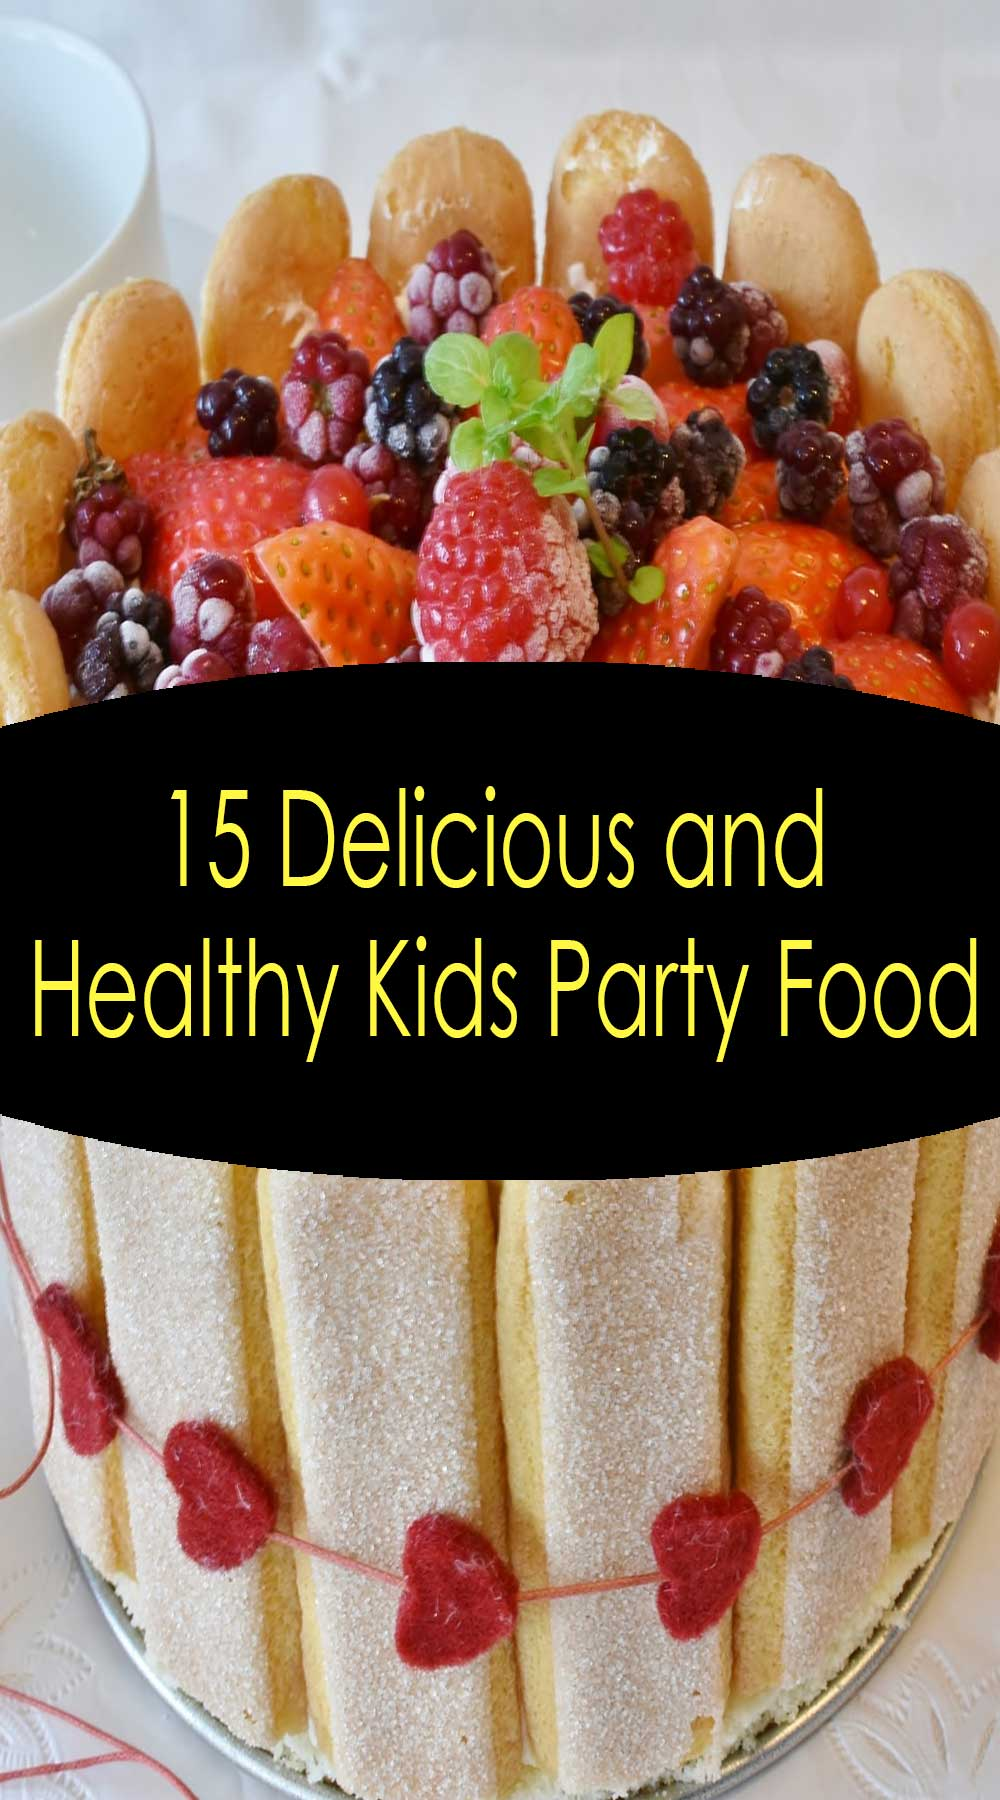 15 Delicious and Healthy Kids Party Food